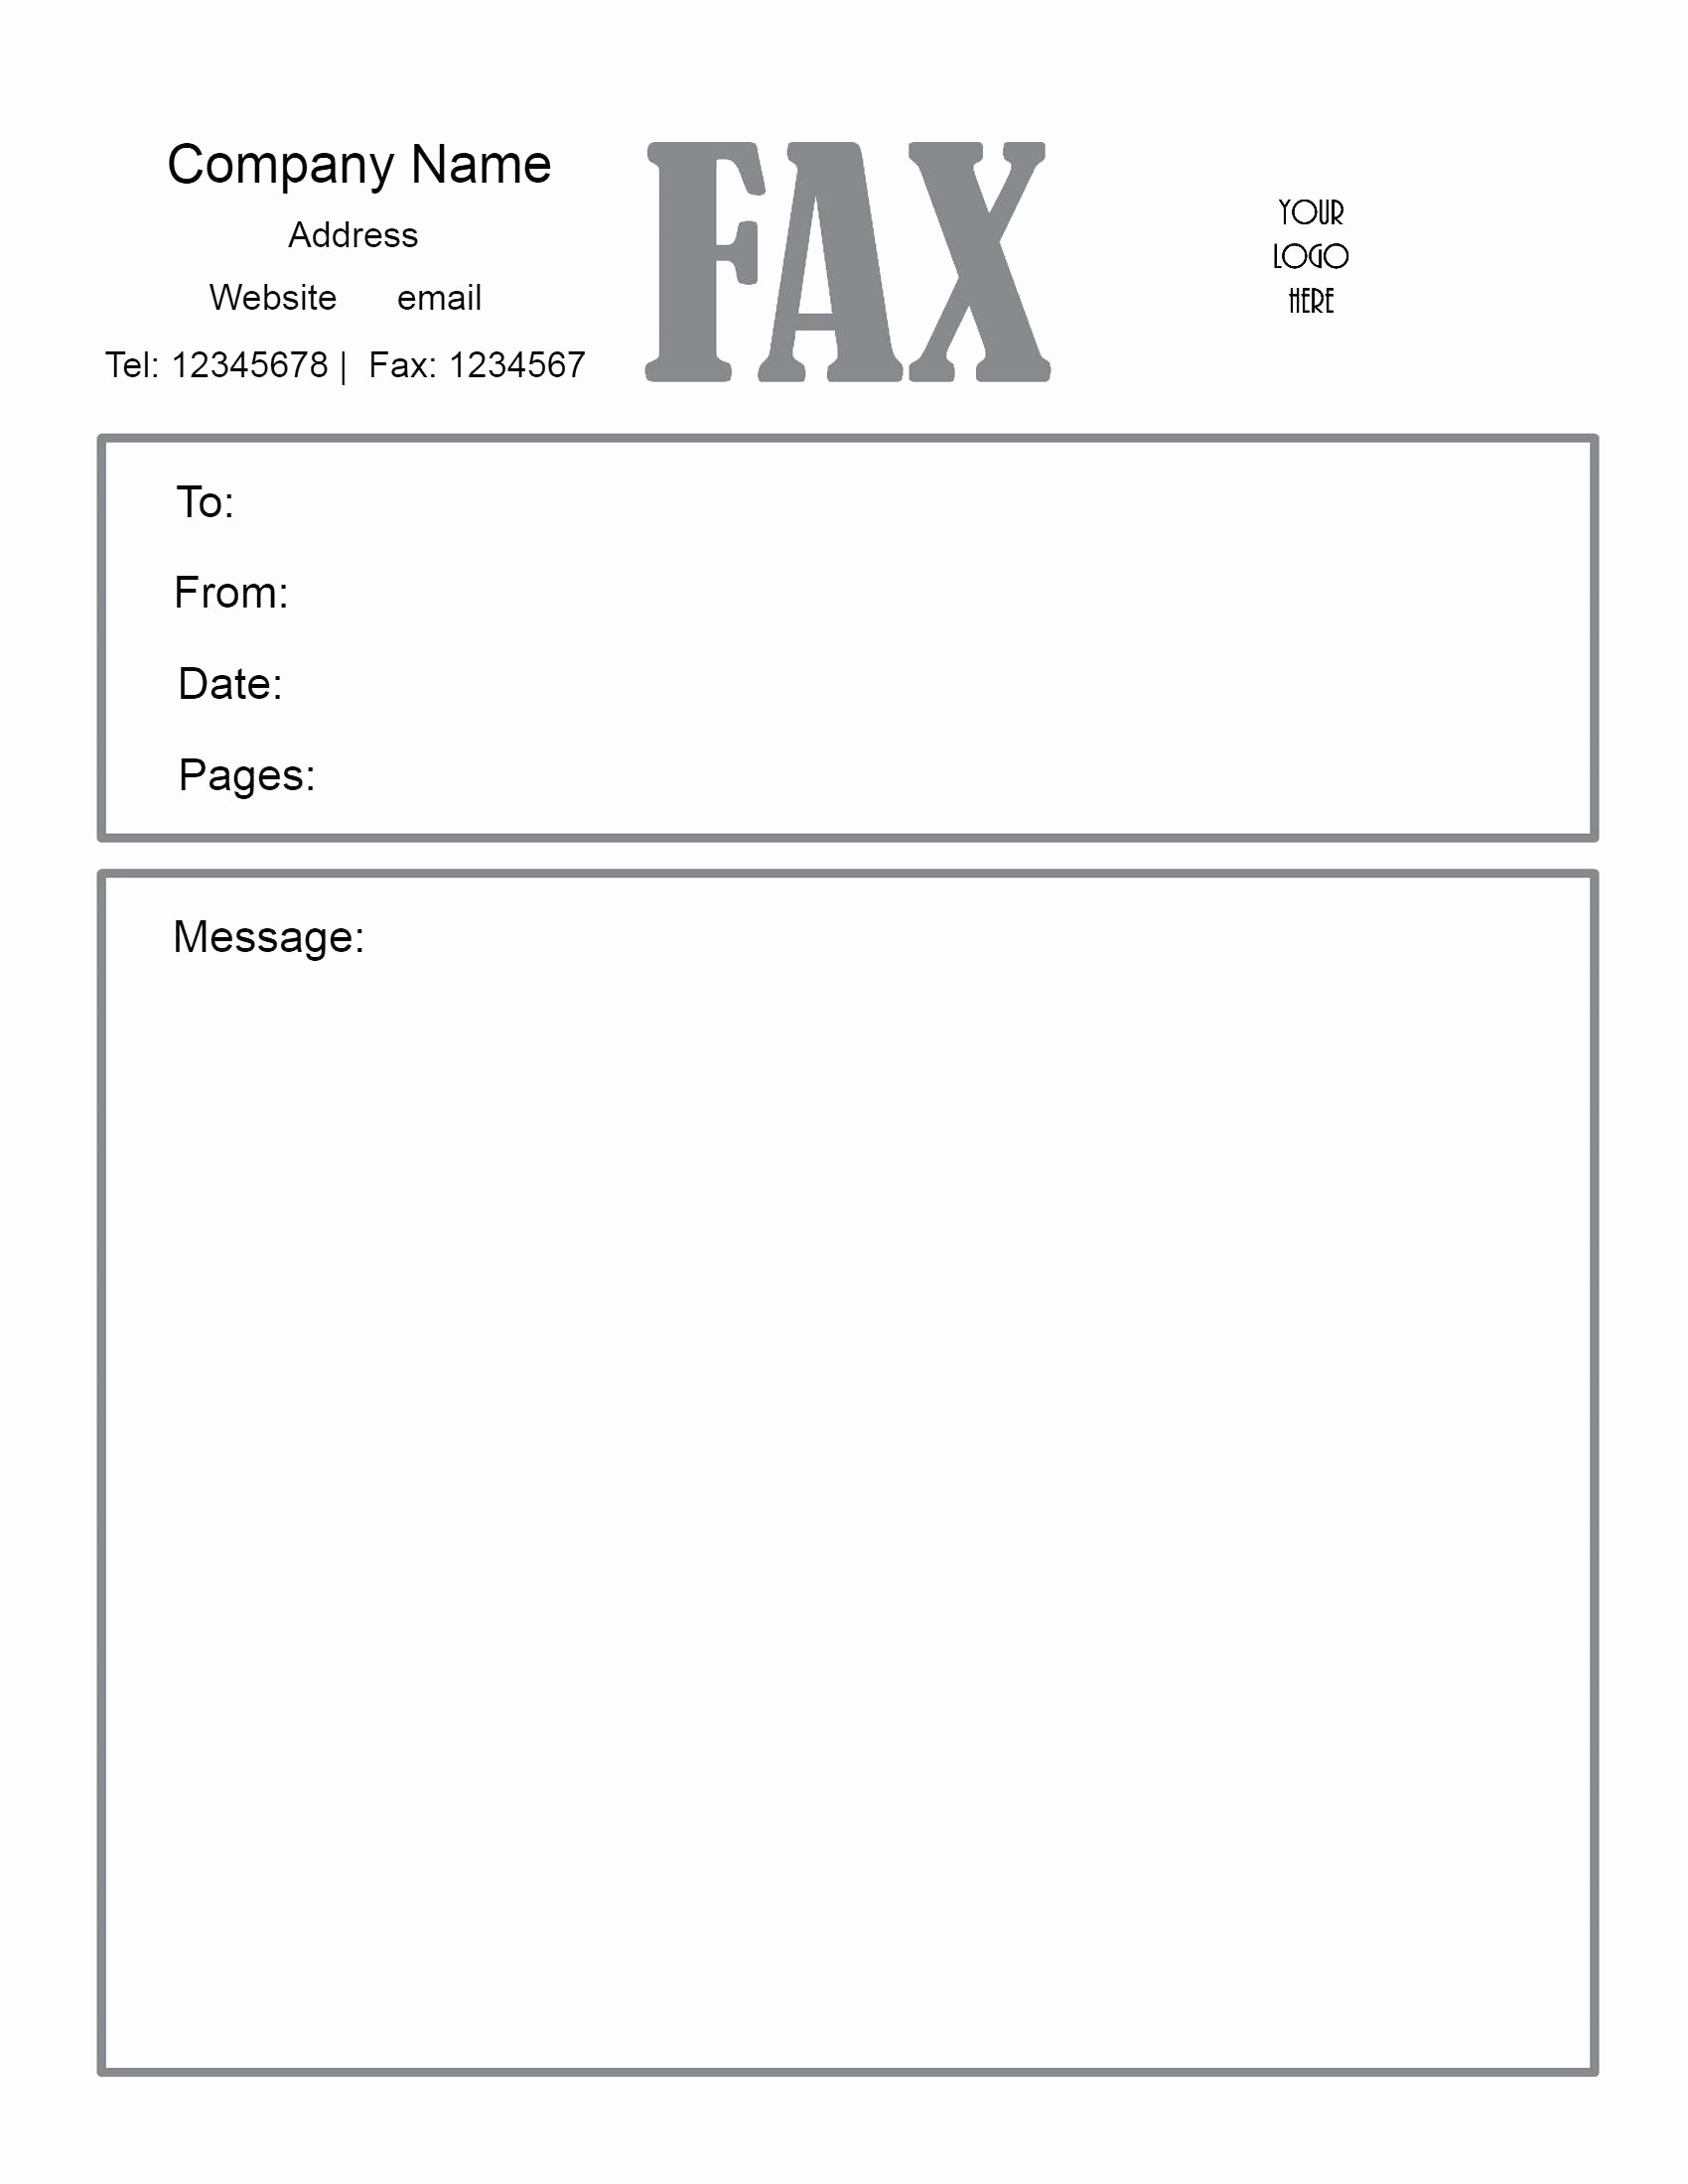 Personal Fax Cover Sheet Pdf Lovely Fax Cover Sheet Pdf Free Download